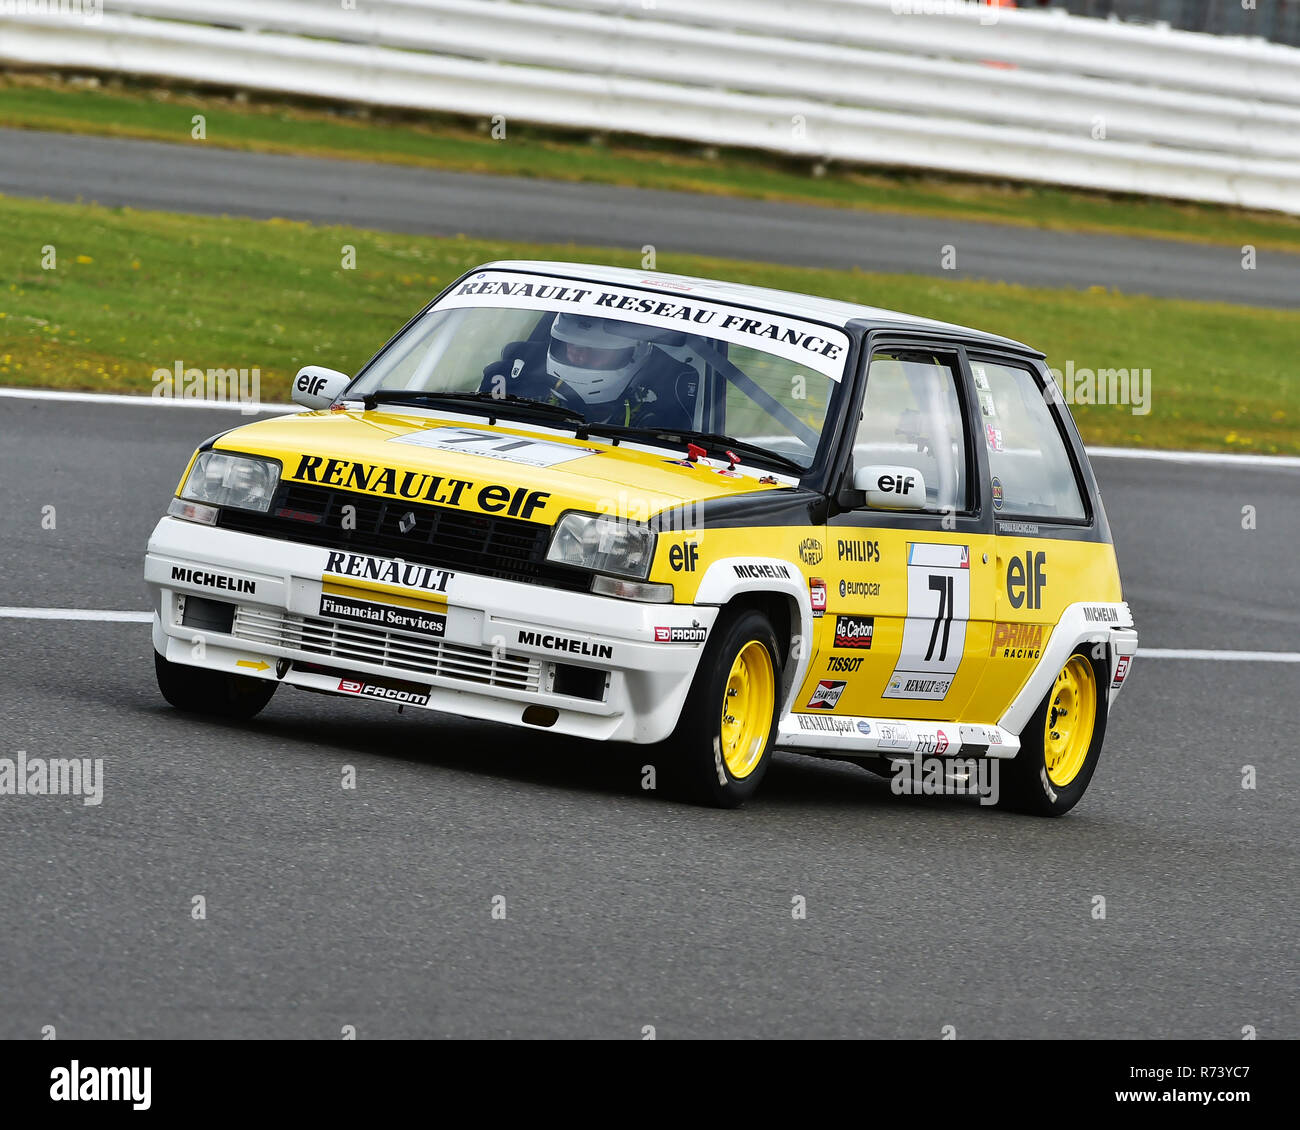 Renault 5 Gt Turbo High Resolution Stock Photography And Images Alamy